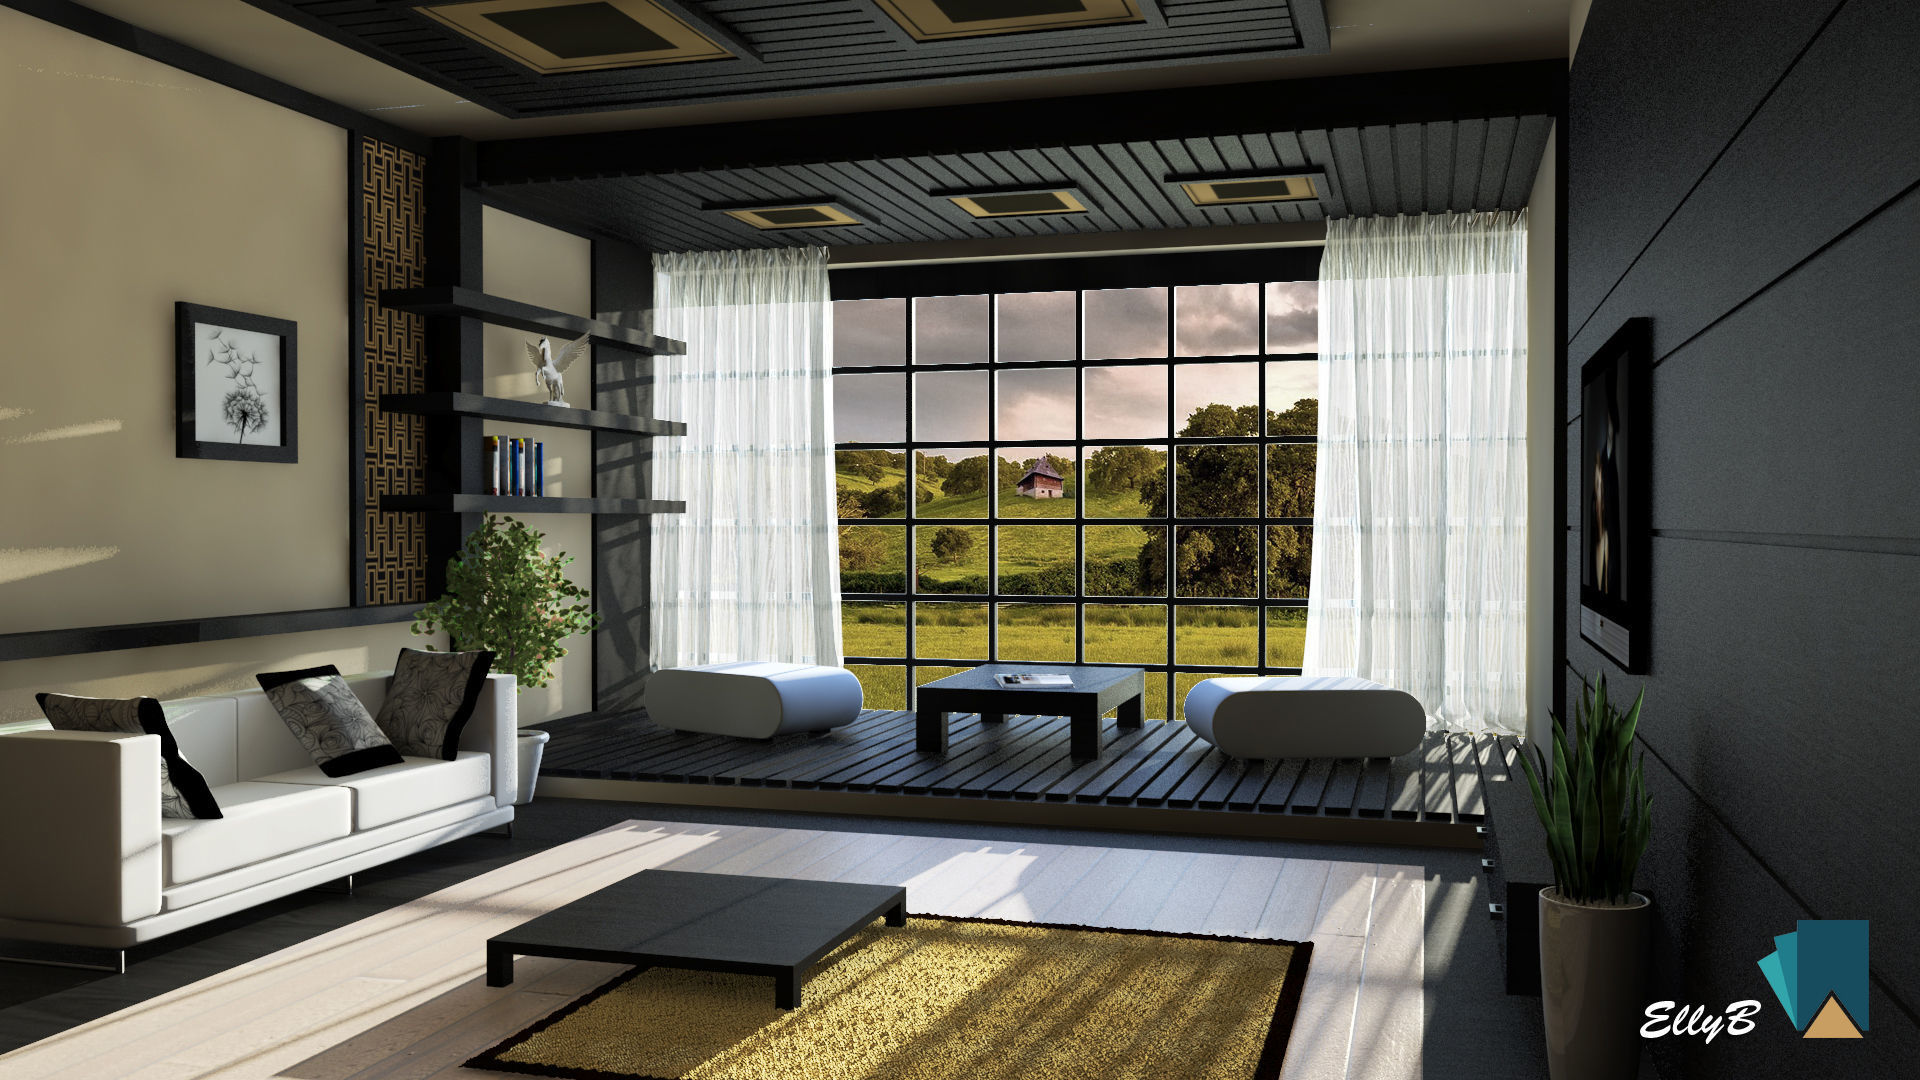 3d japanese style living room cgtrader - Japanese style living room ...